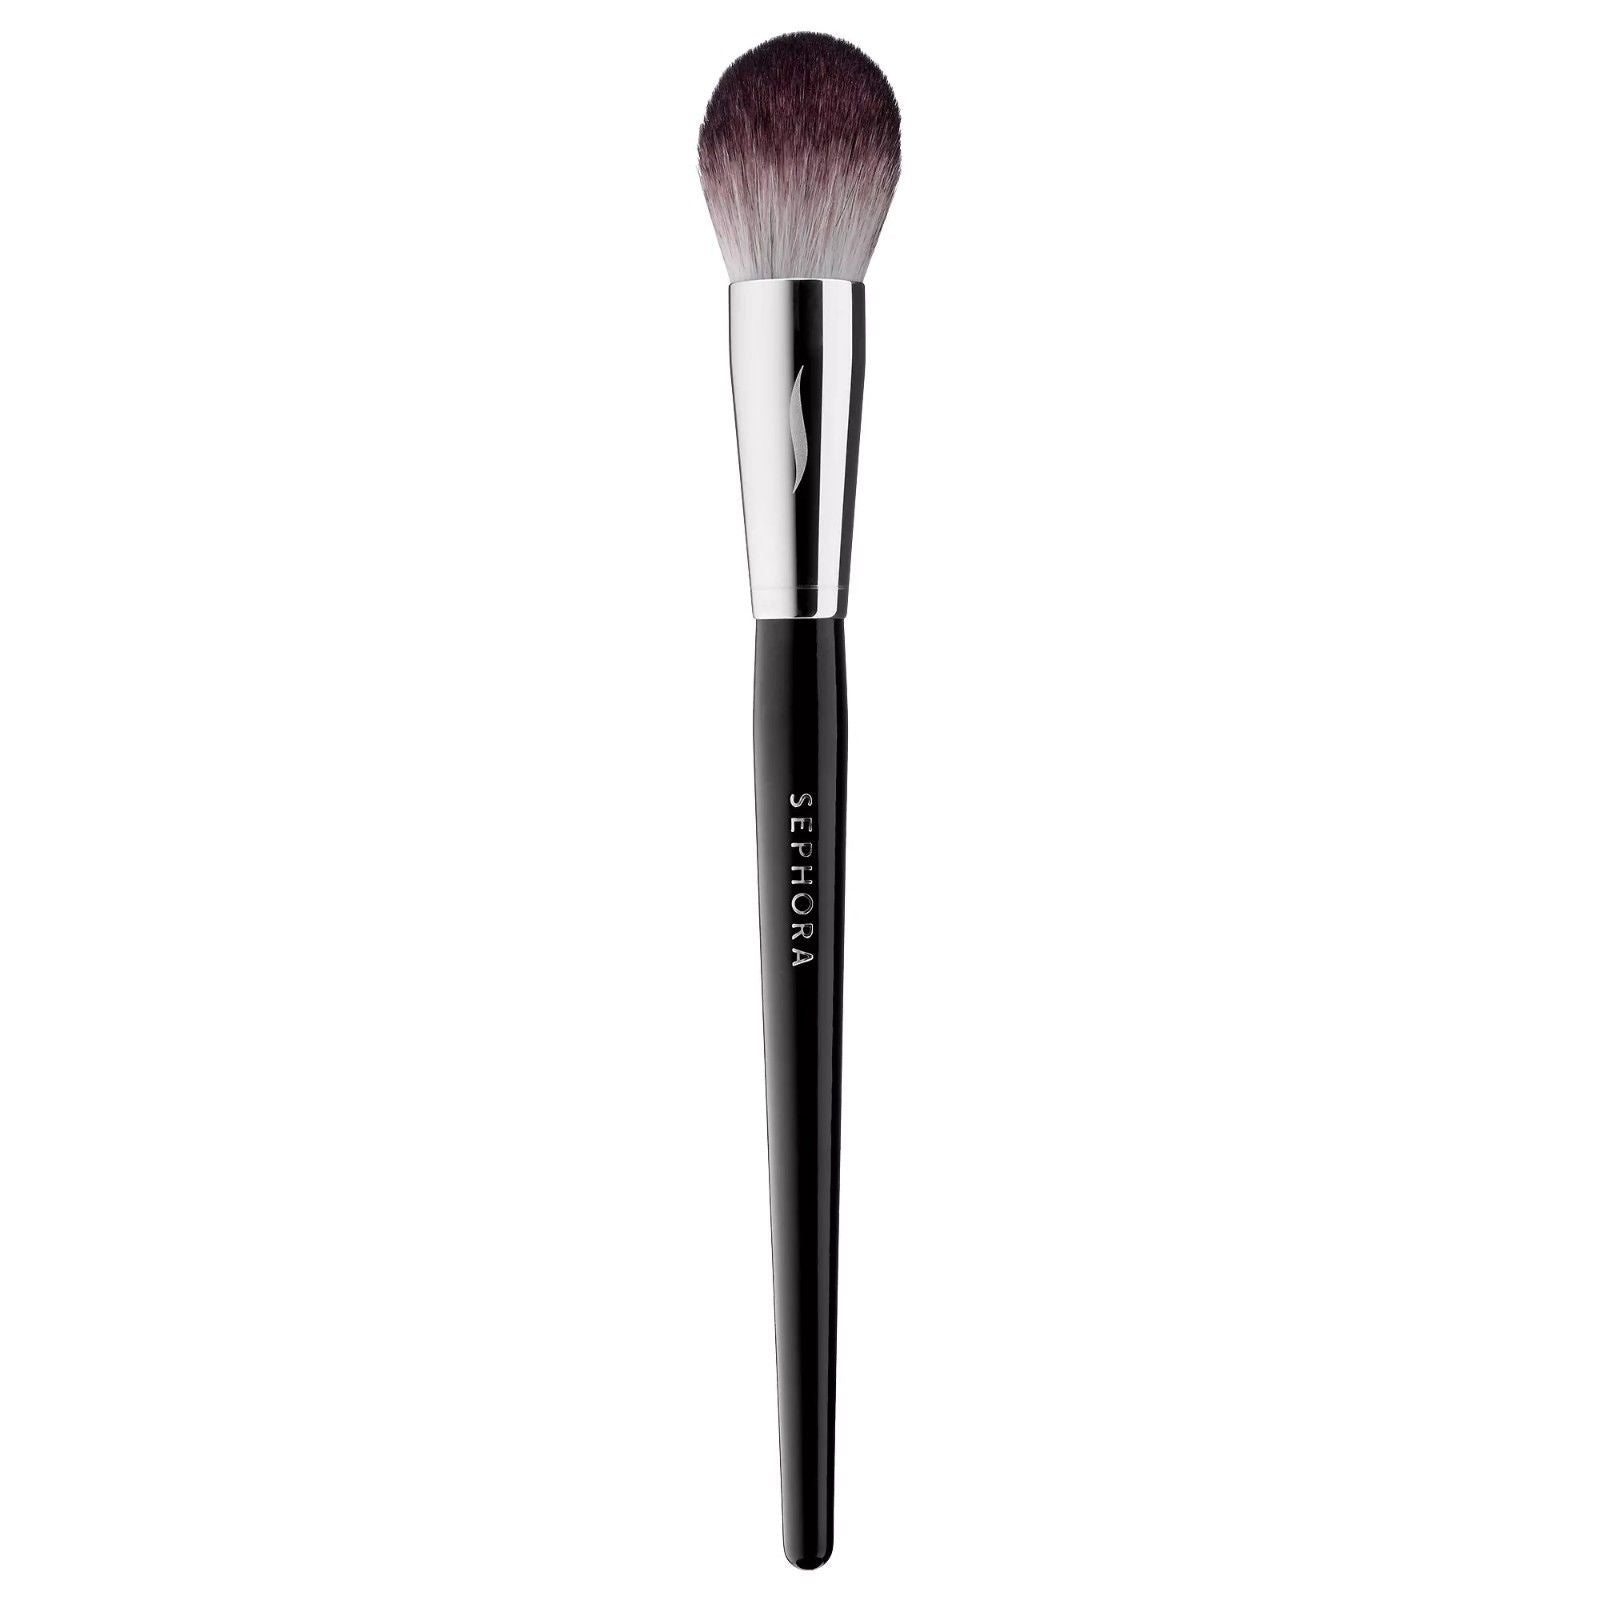 Sephora PRO Featherweight Complexion Brush #90